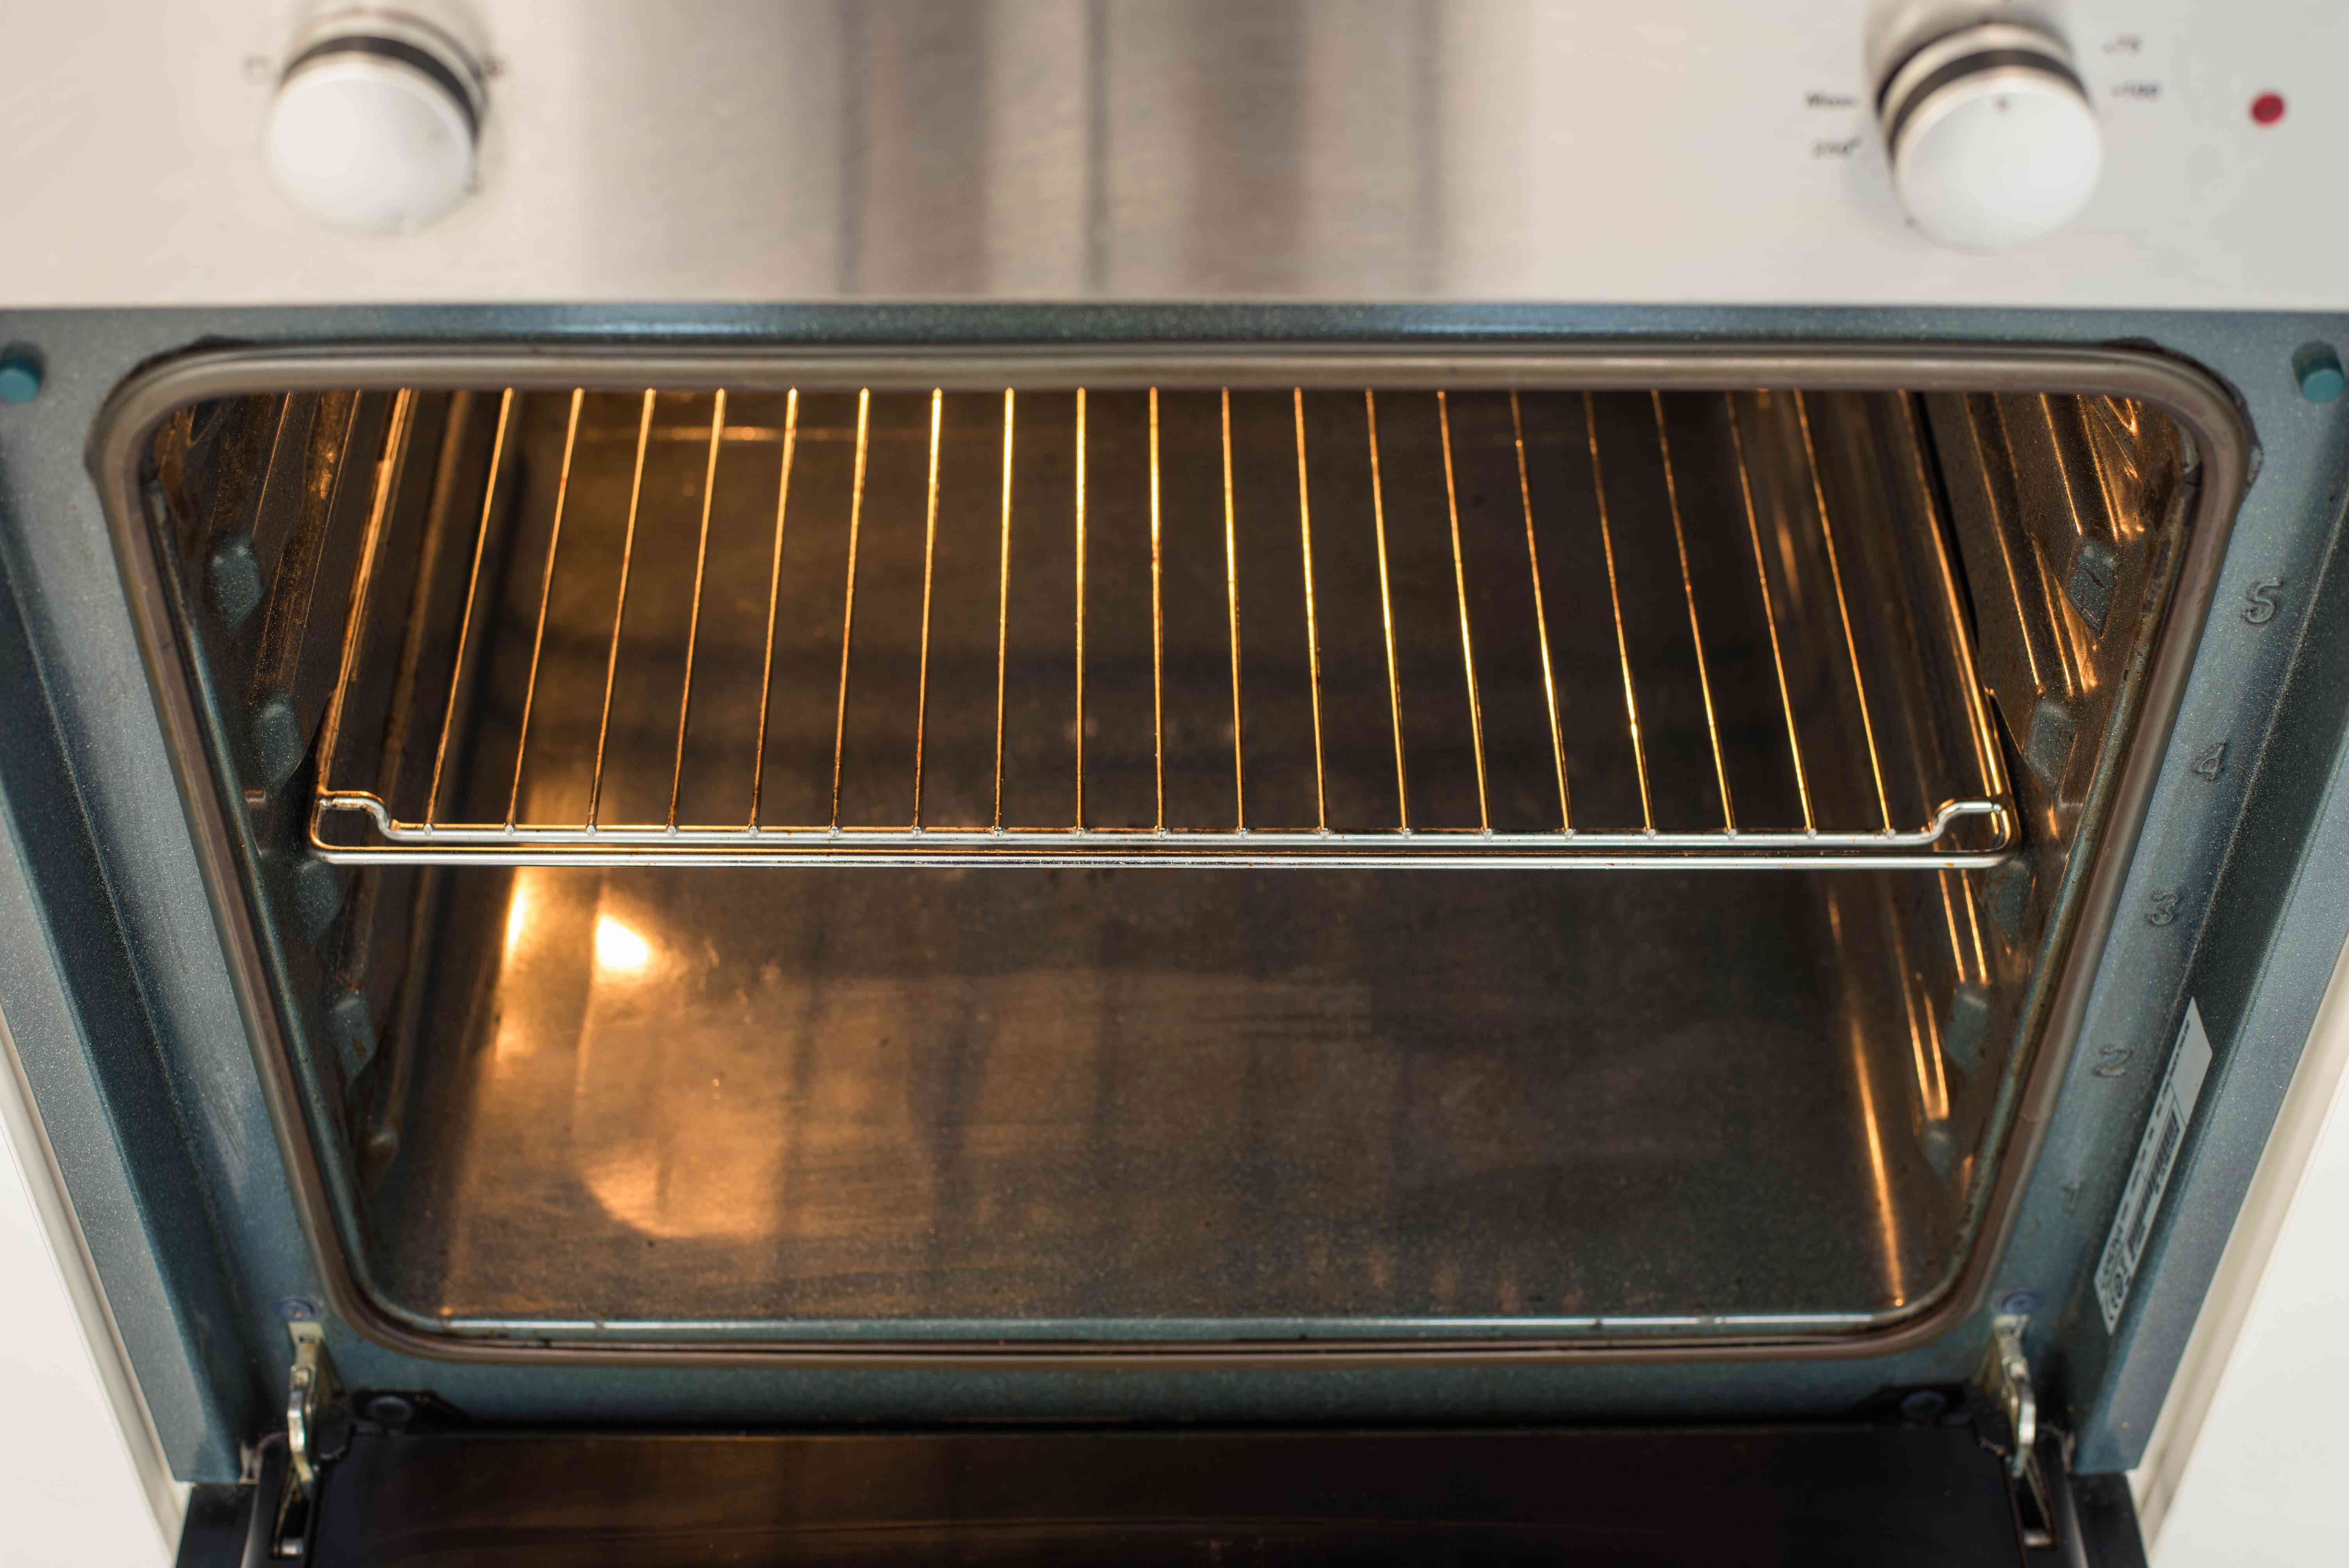 Place rack in oven